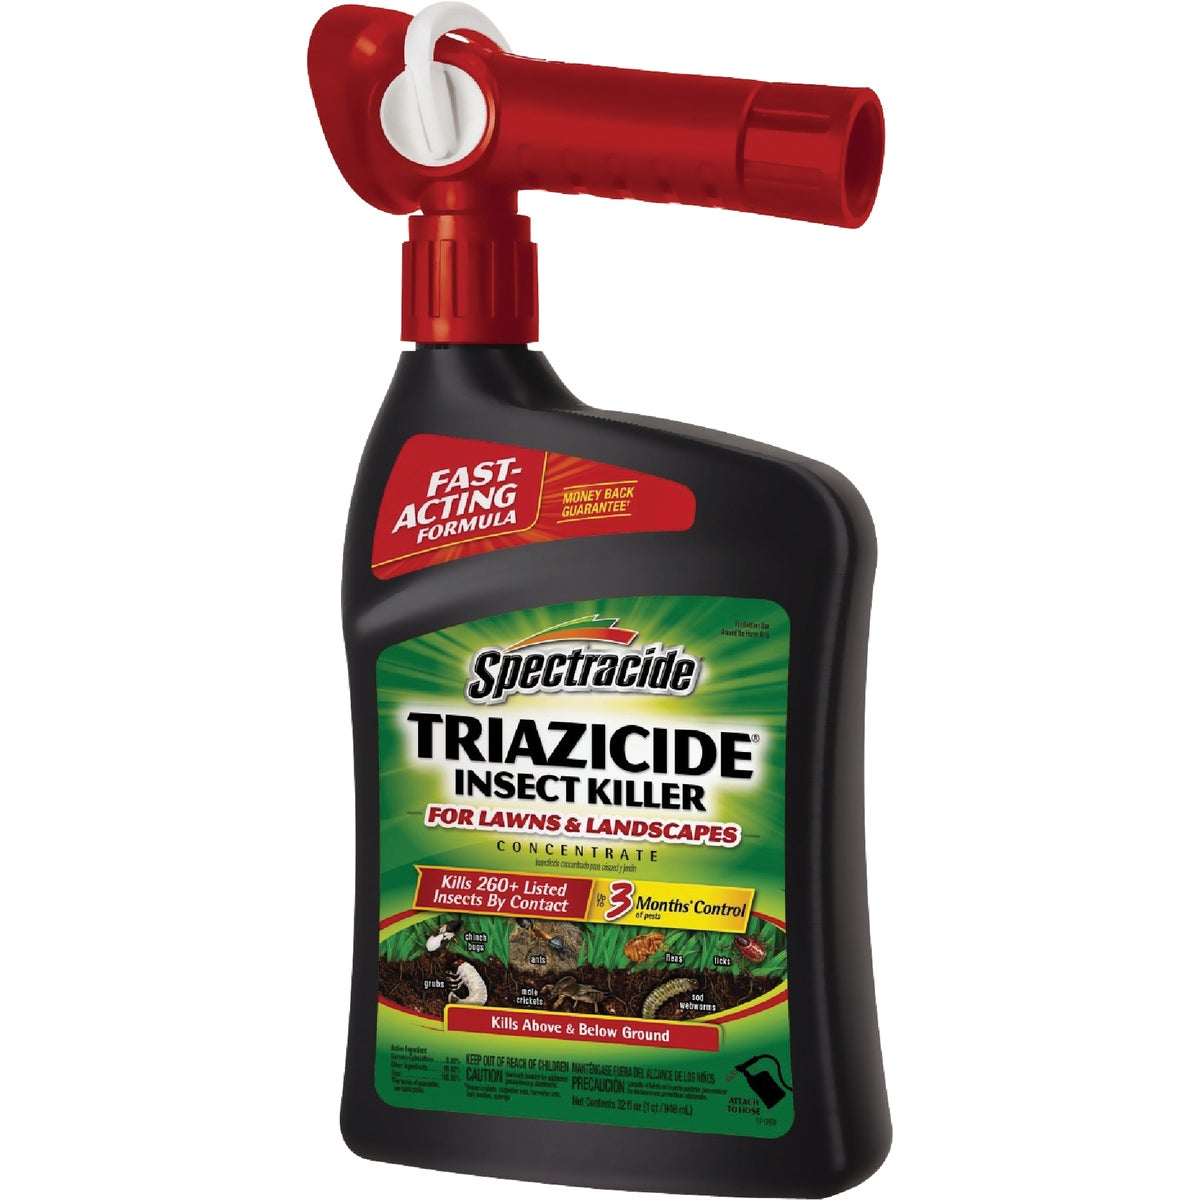 RTS TRIAZICIDE SPRAY - HG95830 by United Industries Co